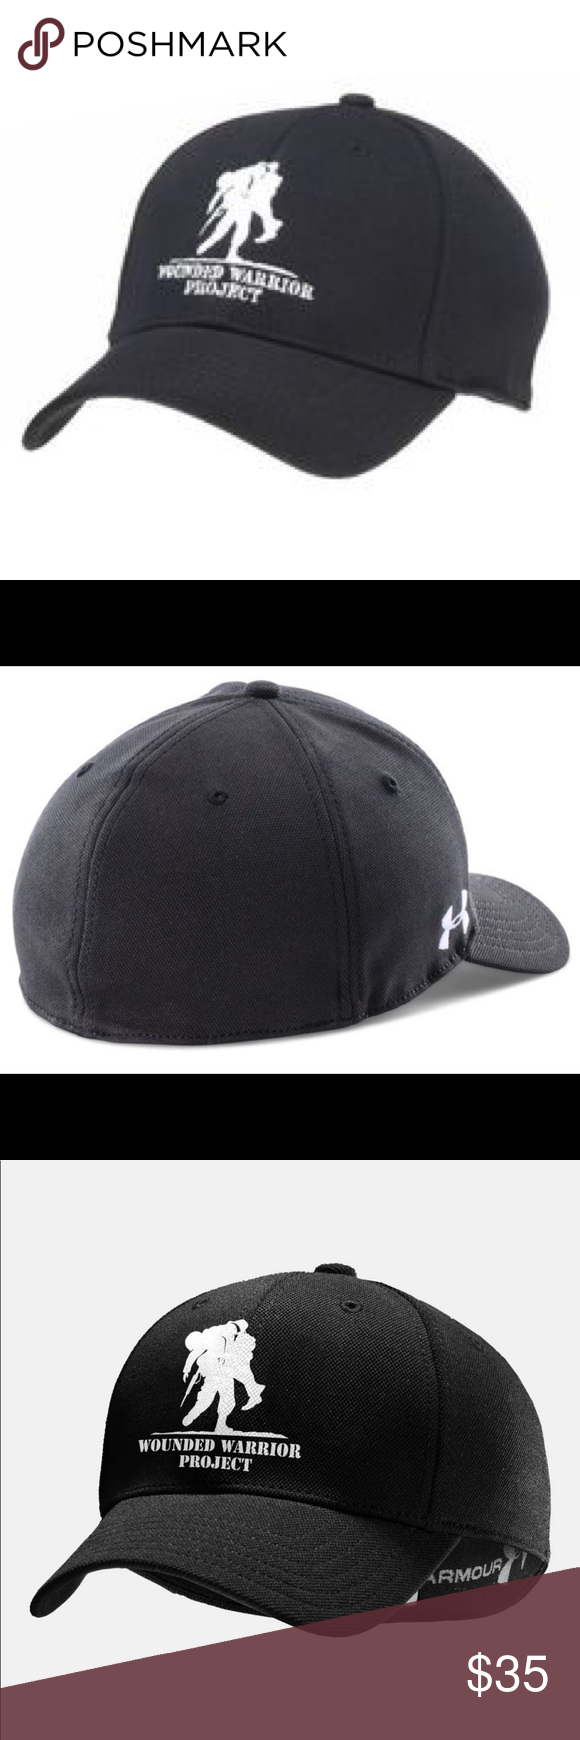 Under Armour wounded warrior project UA cap hat This hat is an Official Wounded  Warrior Project Licensed product Wounded Warrior Project™ will receive 10%  ... 2aa0fa35dd5